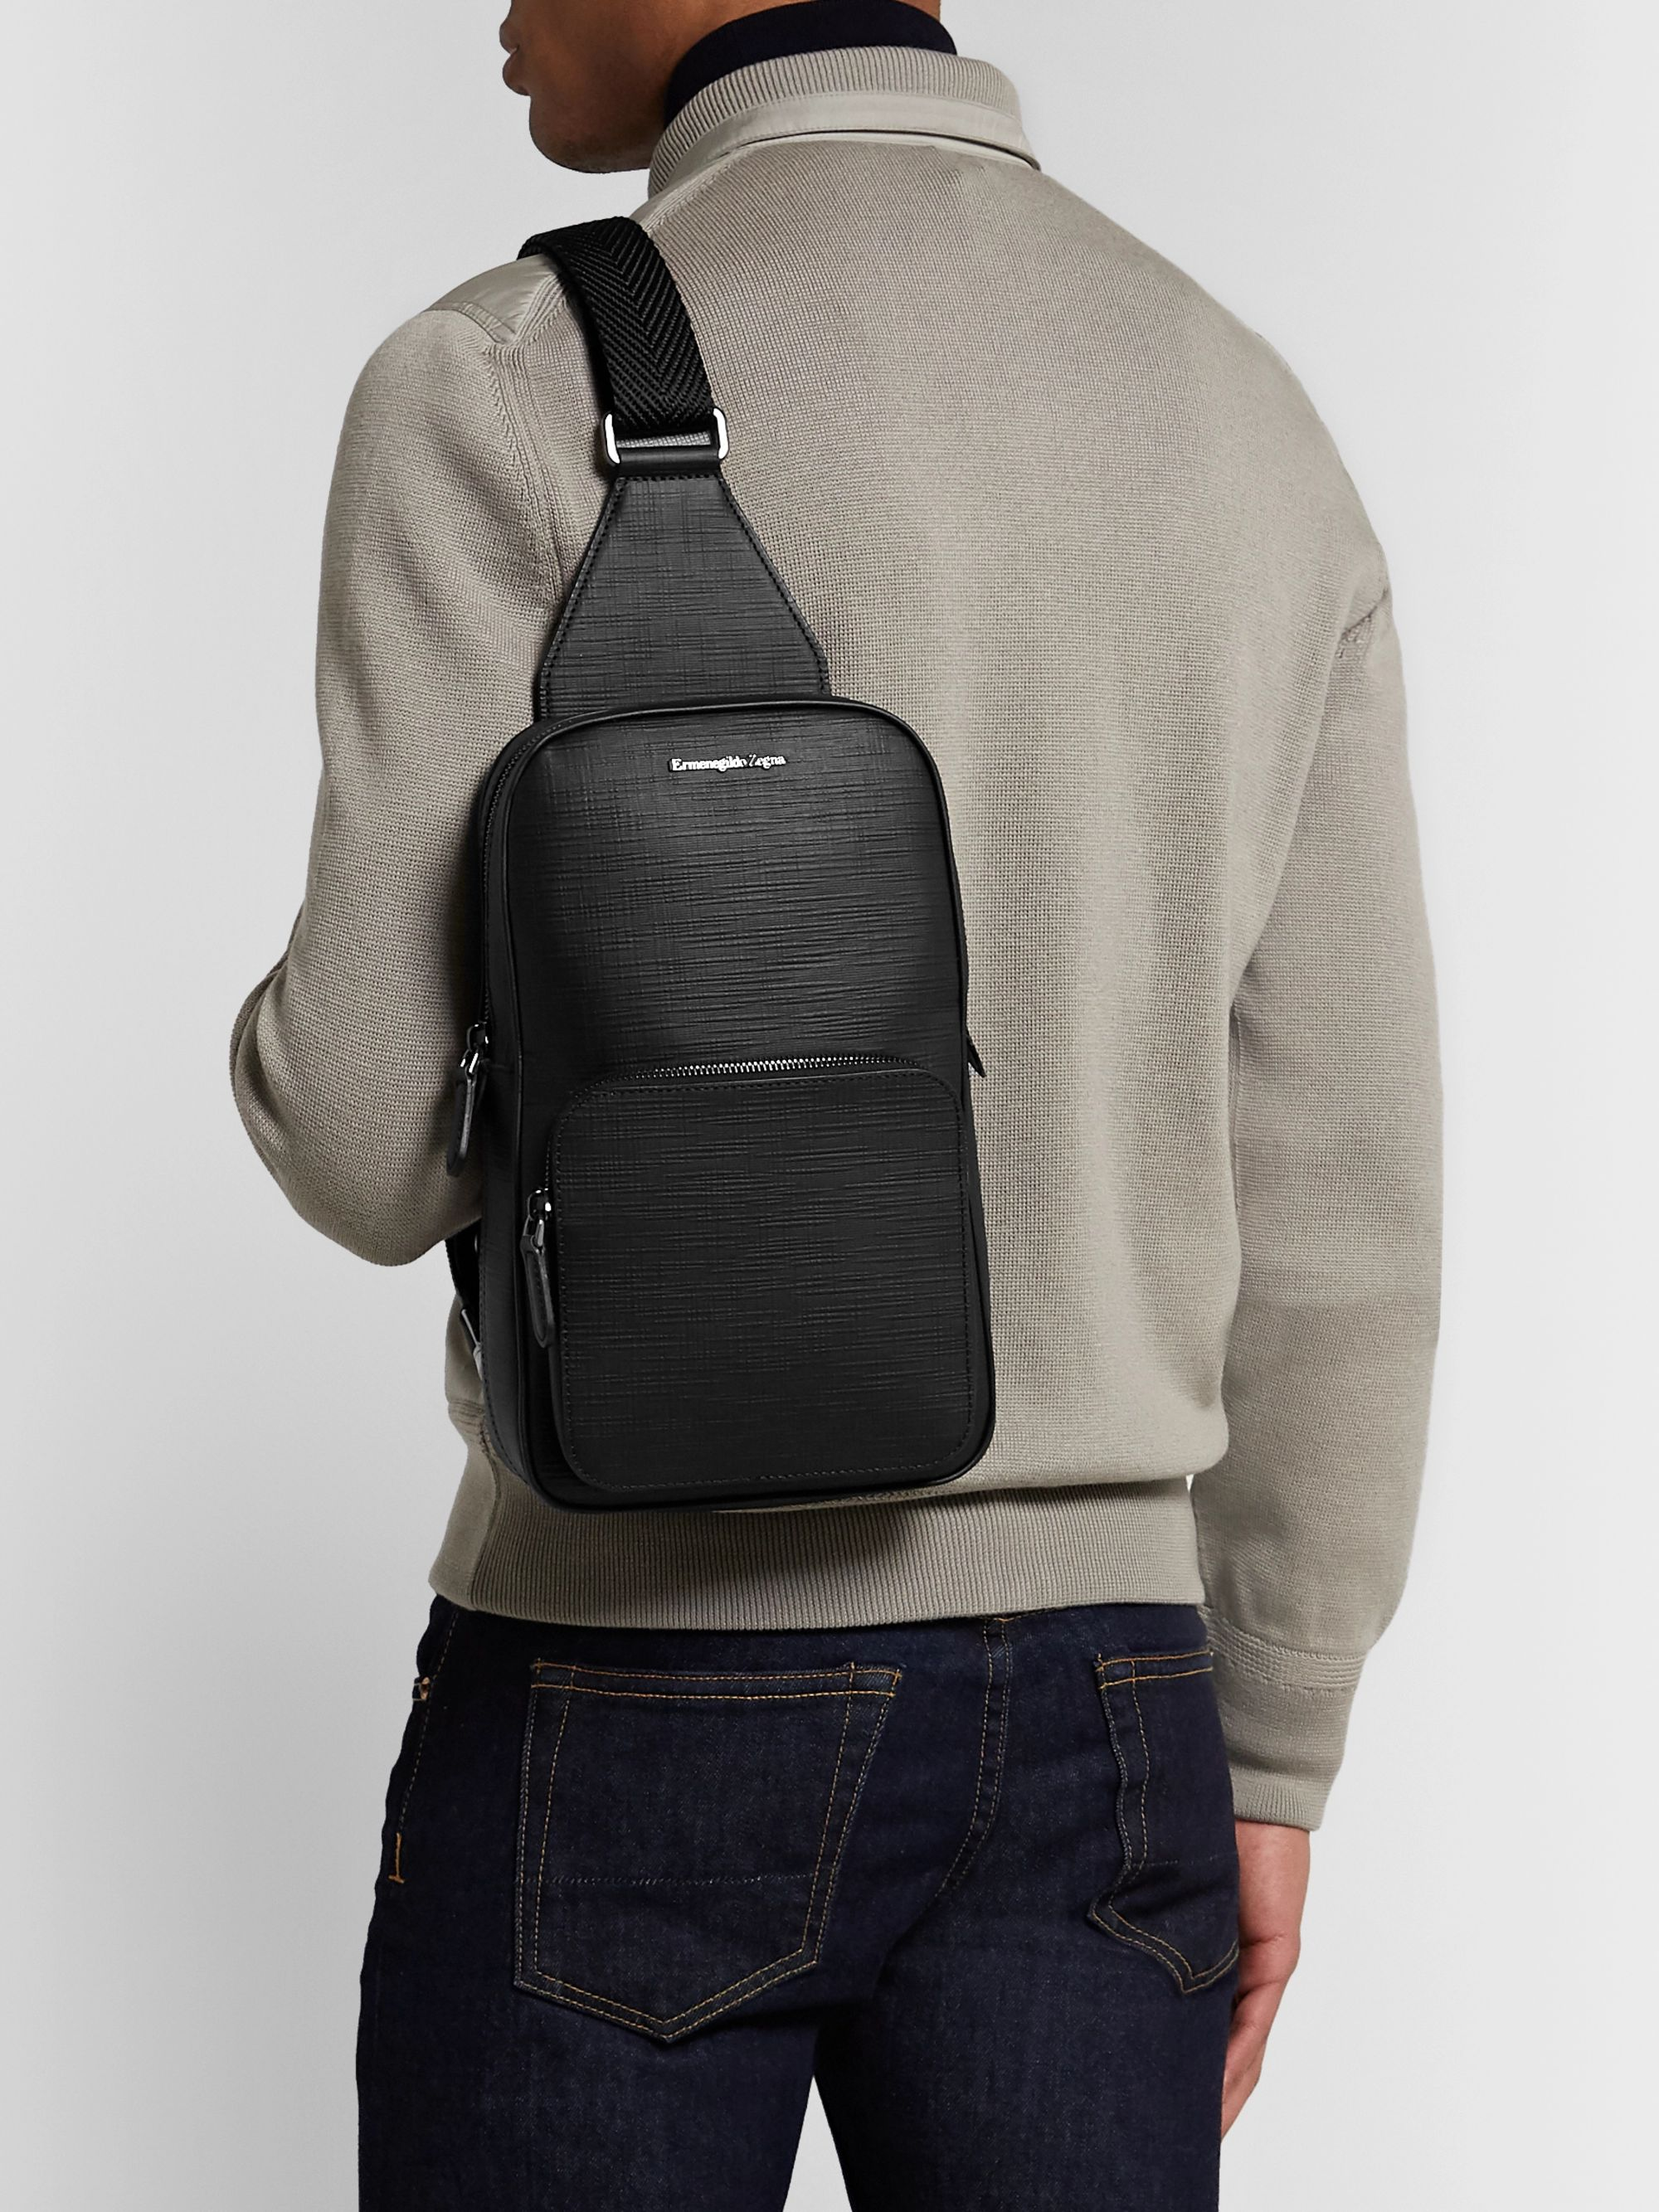 Ermenegildo Zegna Cross-Grain Leather Backpack